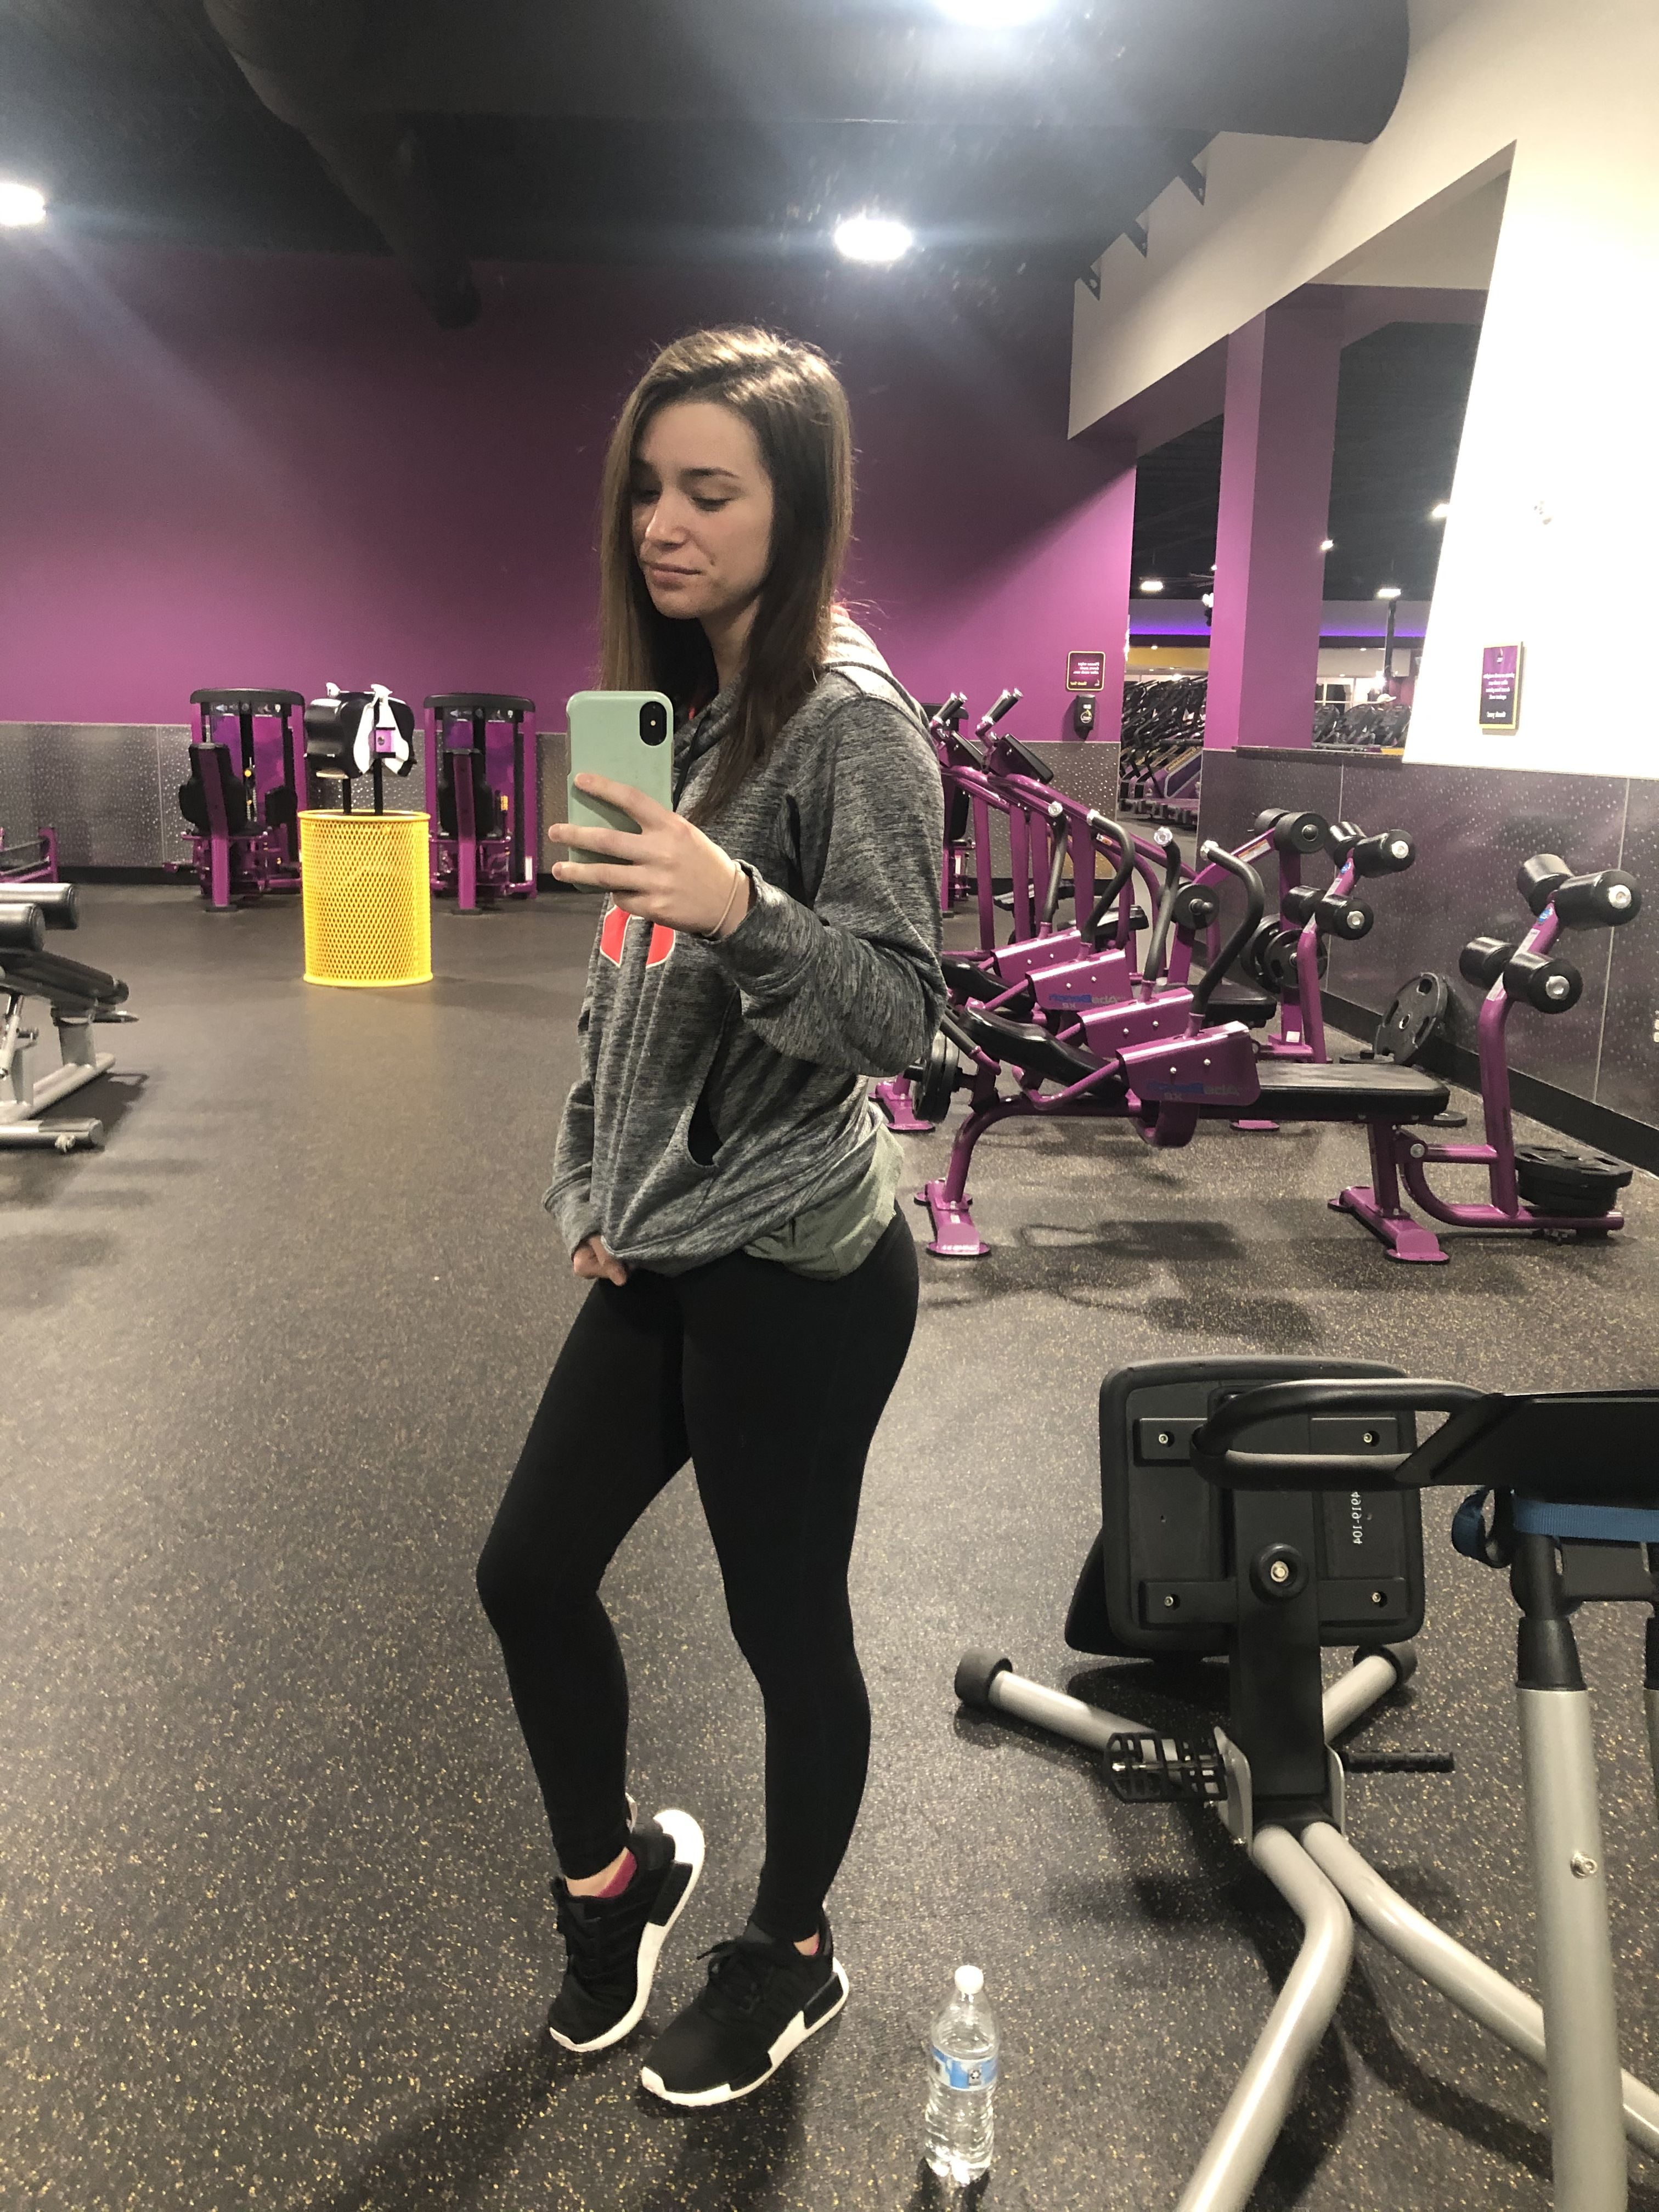 Early morning gym sessions are the best gym time